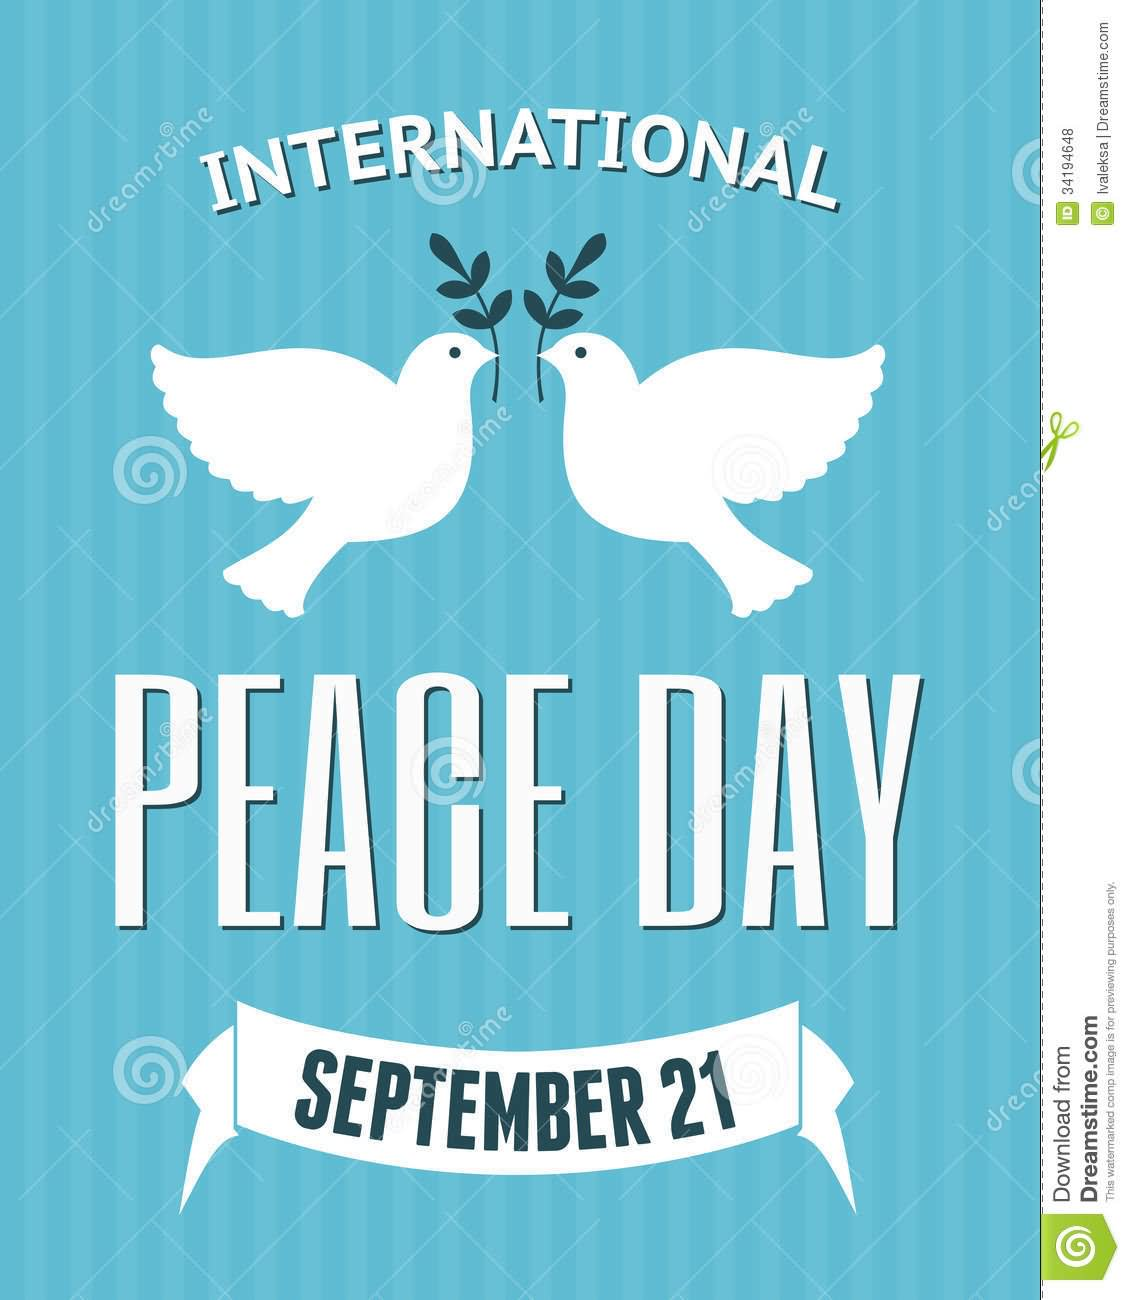 25 International Peace Day Poster Images And Pictures